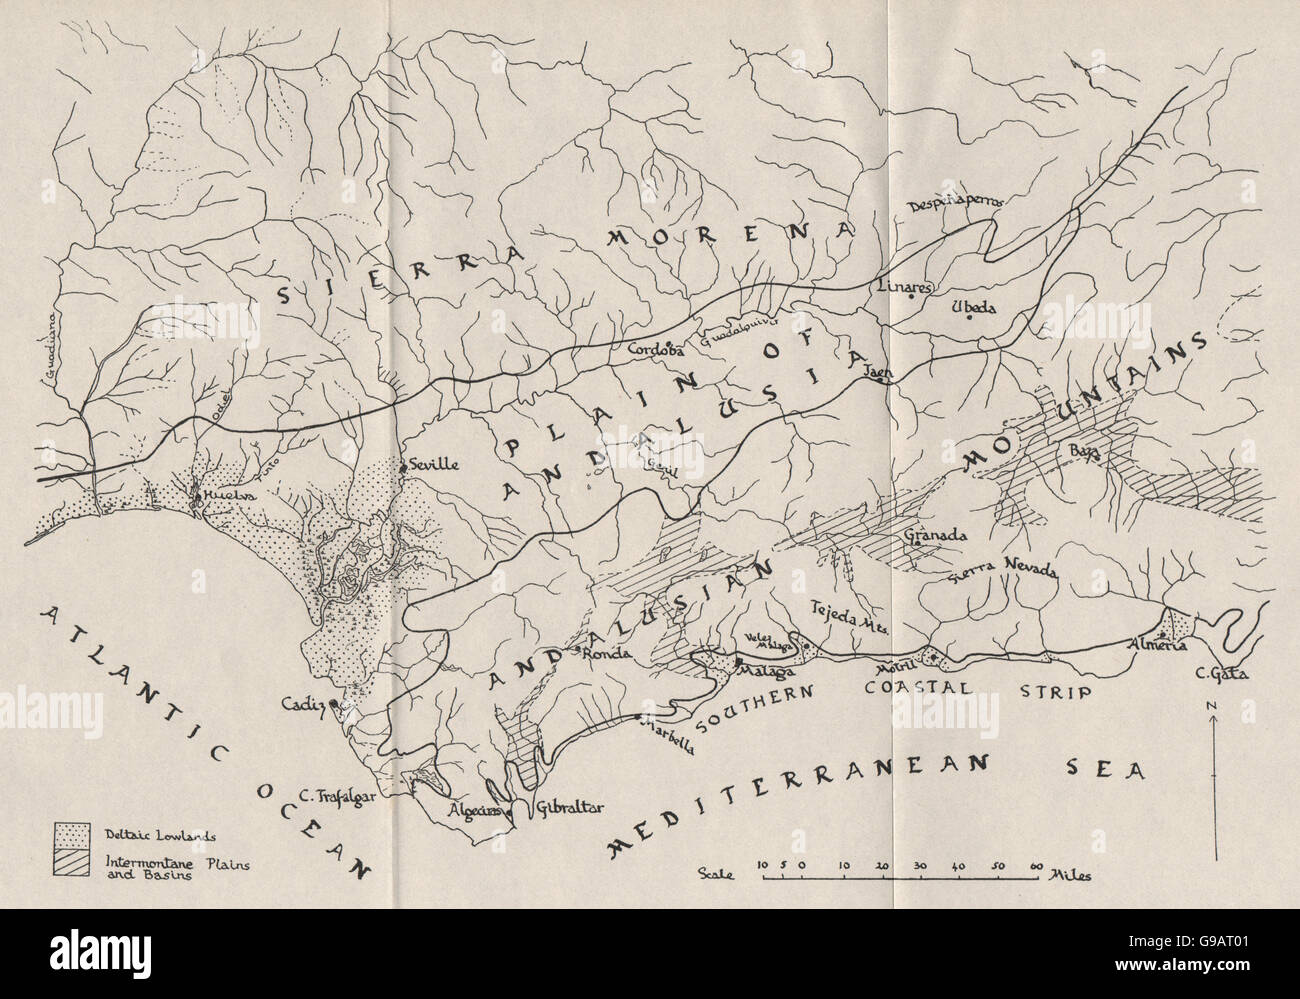 ANDALUSIA PHYSICALSouthern Spain landformsWW2 ROYAL NAVY Stock